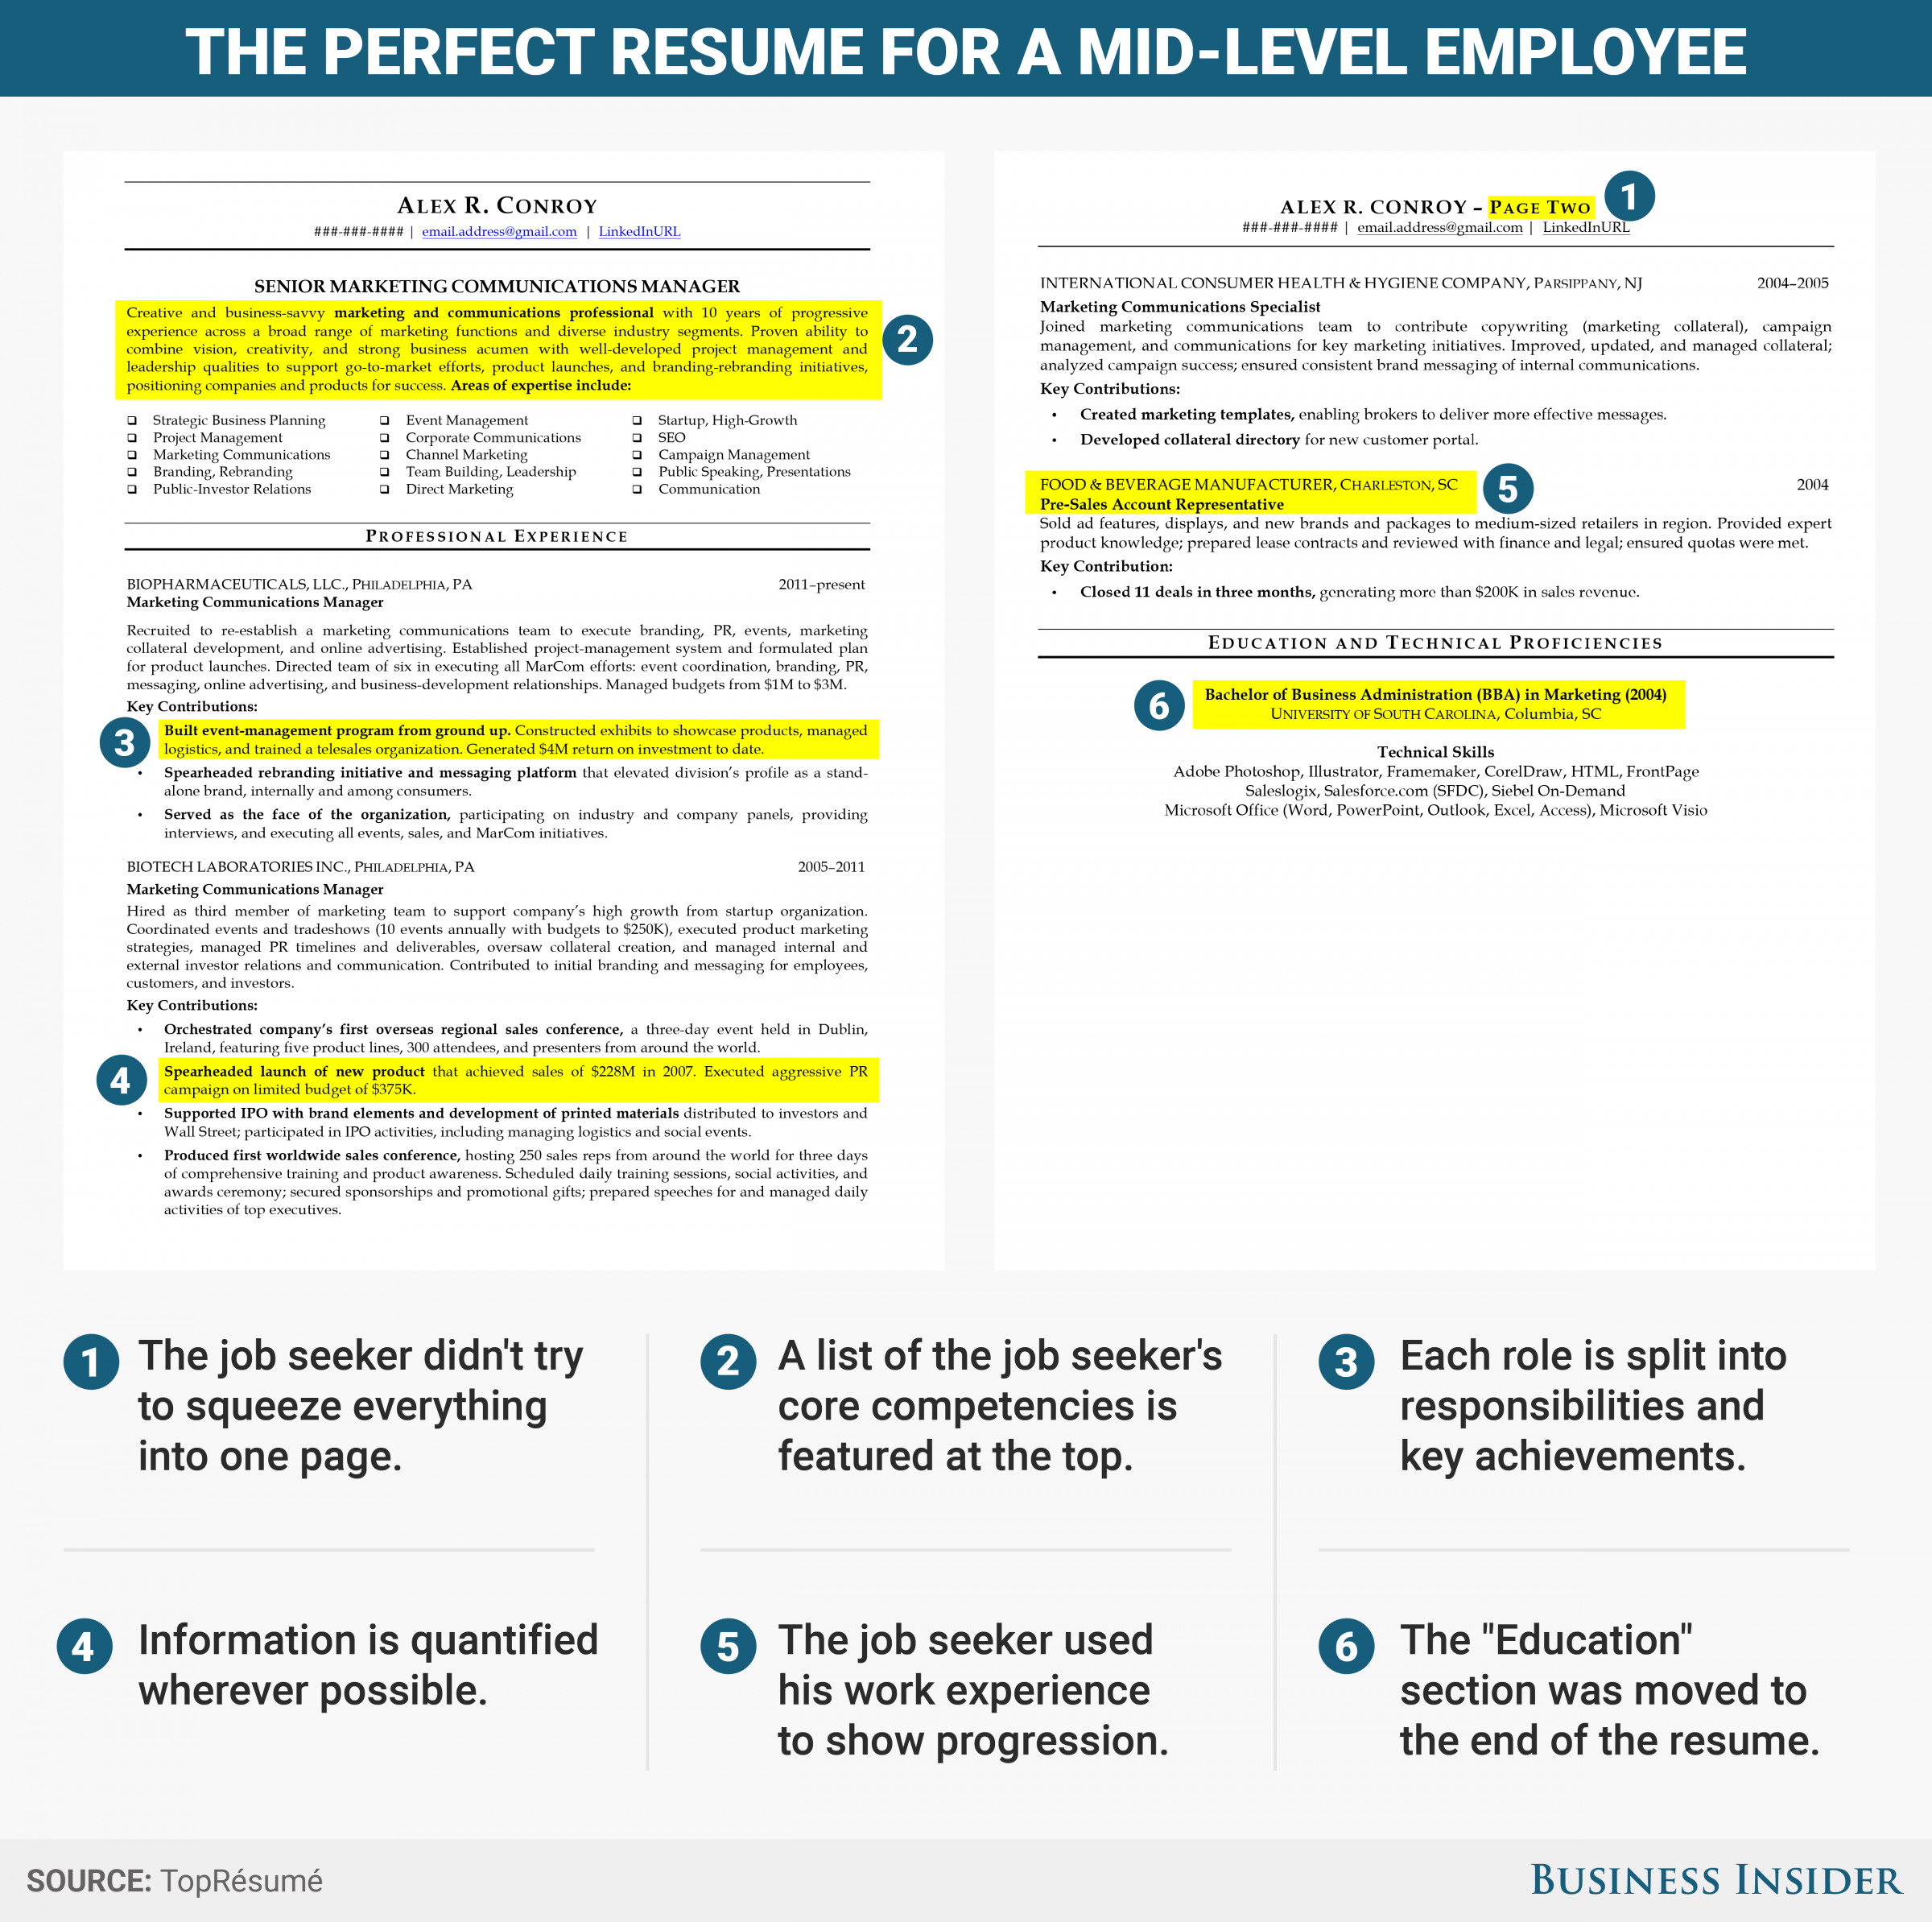 Here Is An Excellent Résumé For A Mid Level Employee